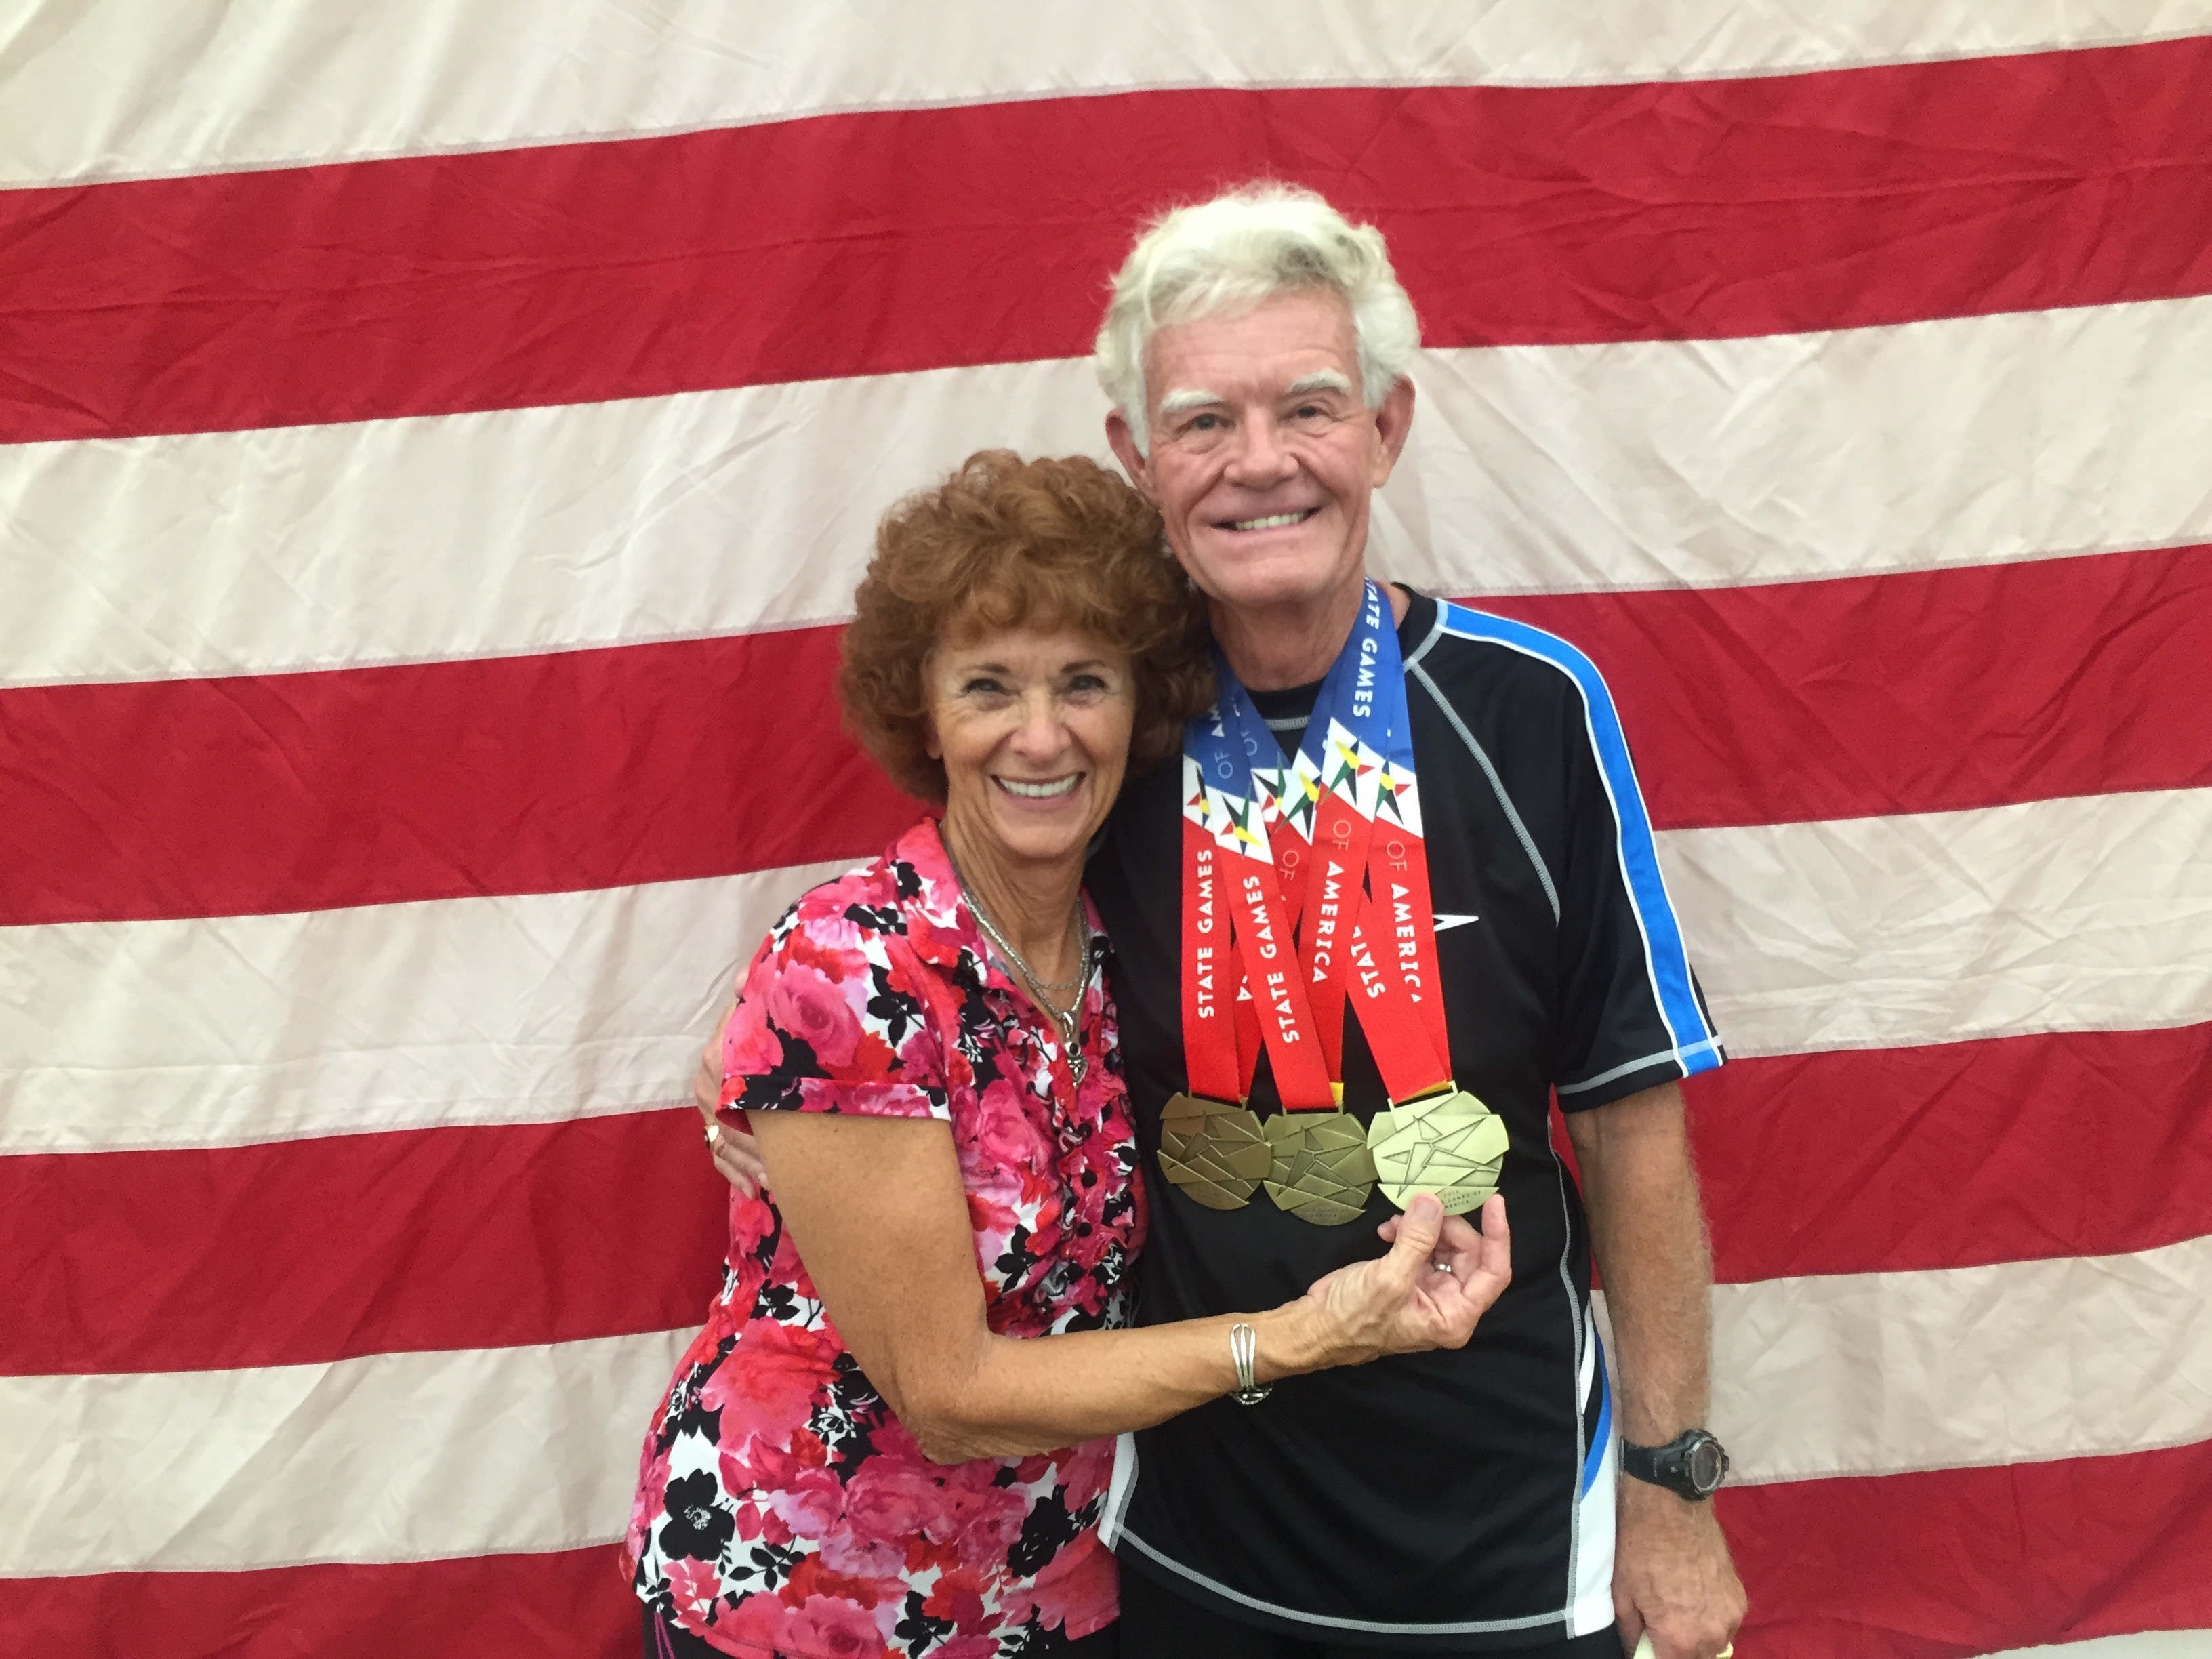 Dick and Lawana Johnson at a pickleball competition.